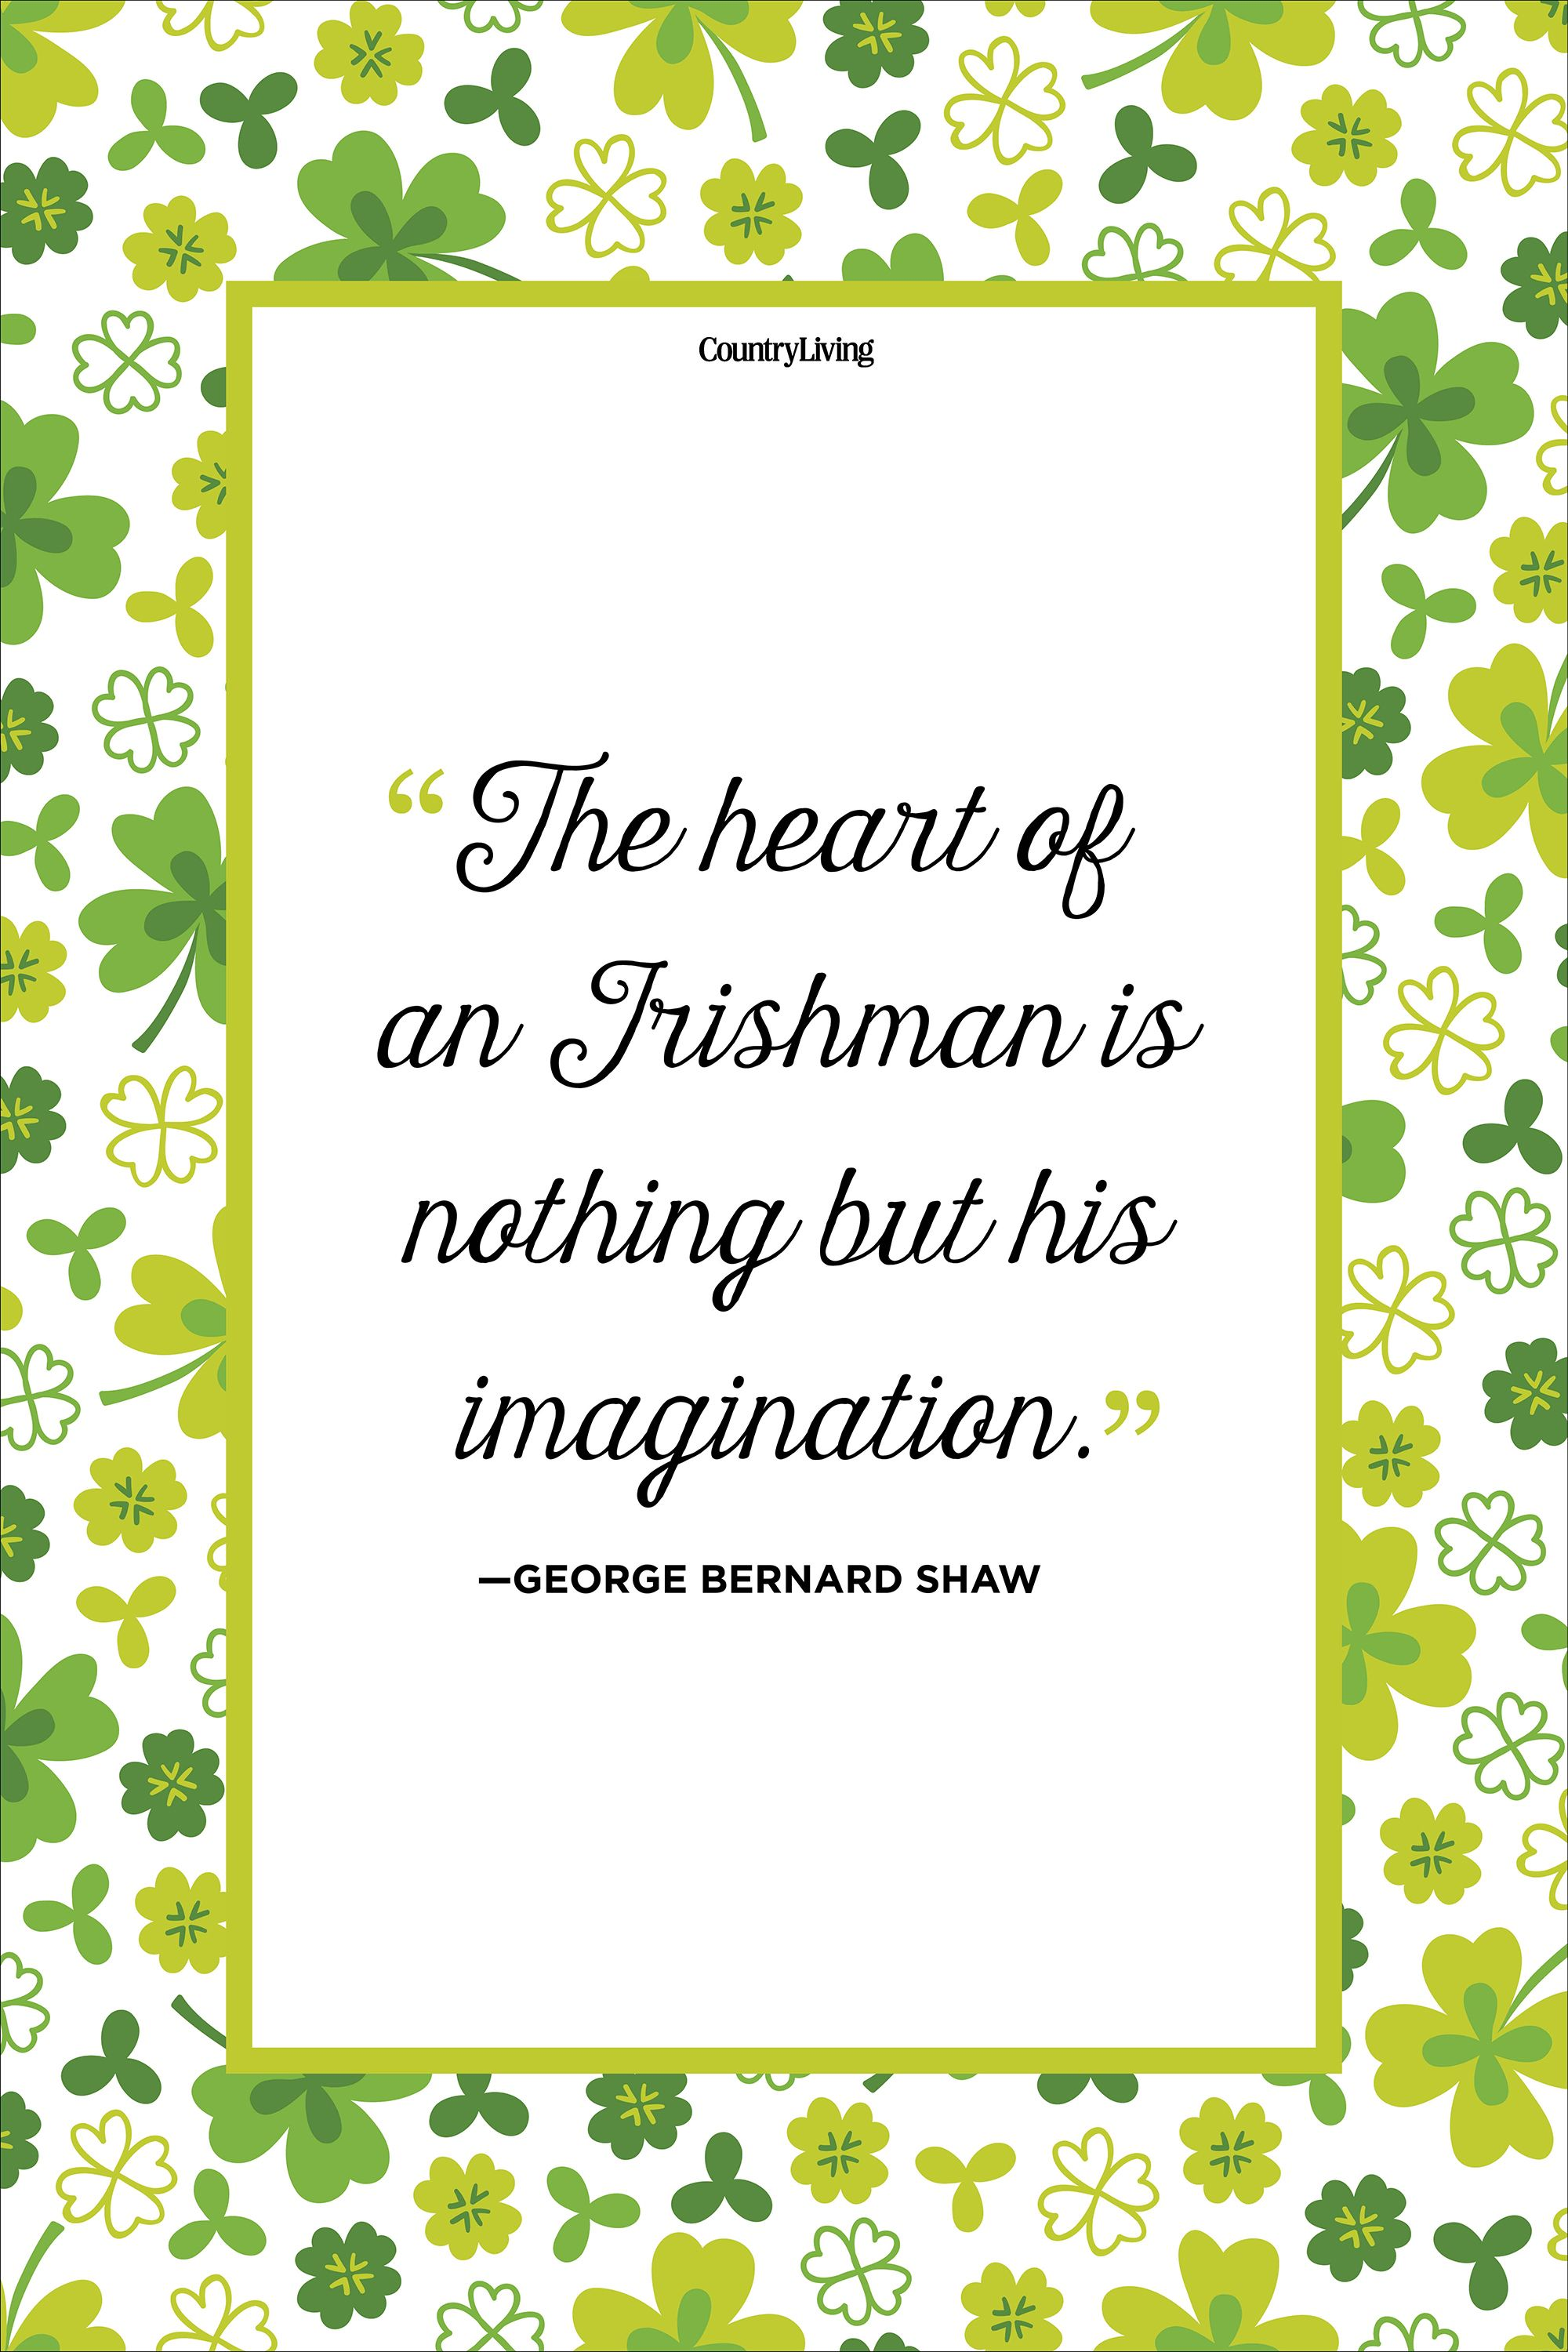 george bernard shaw st patricks day quote